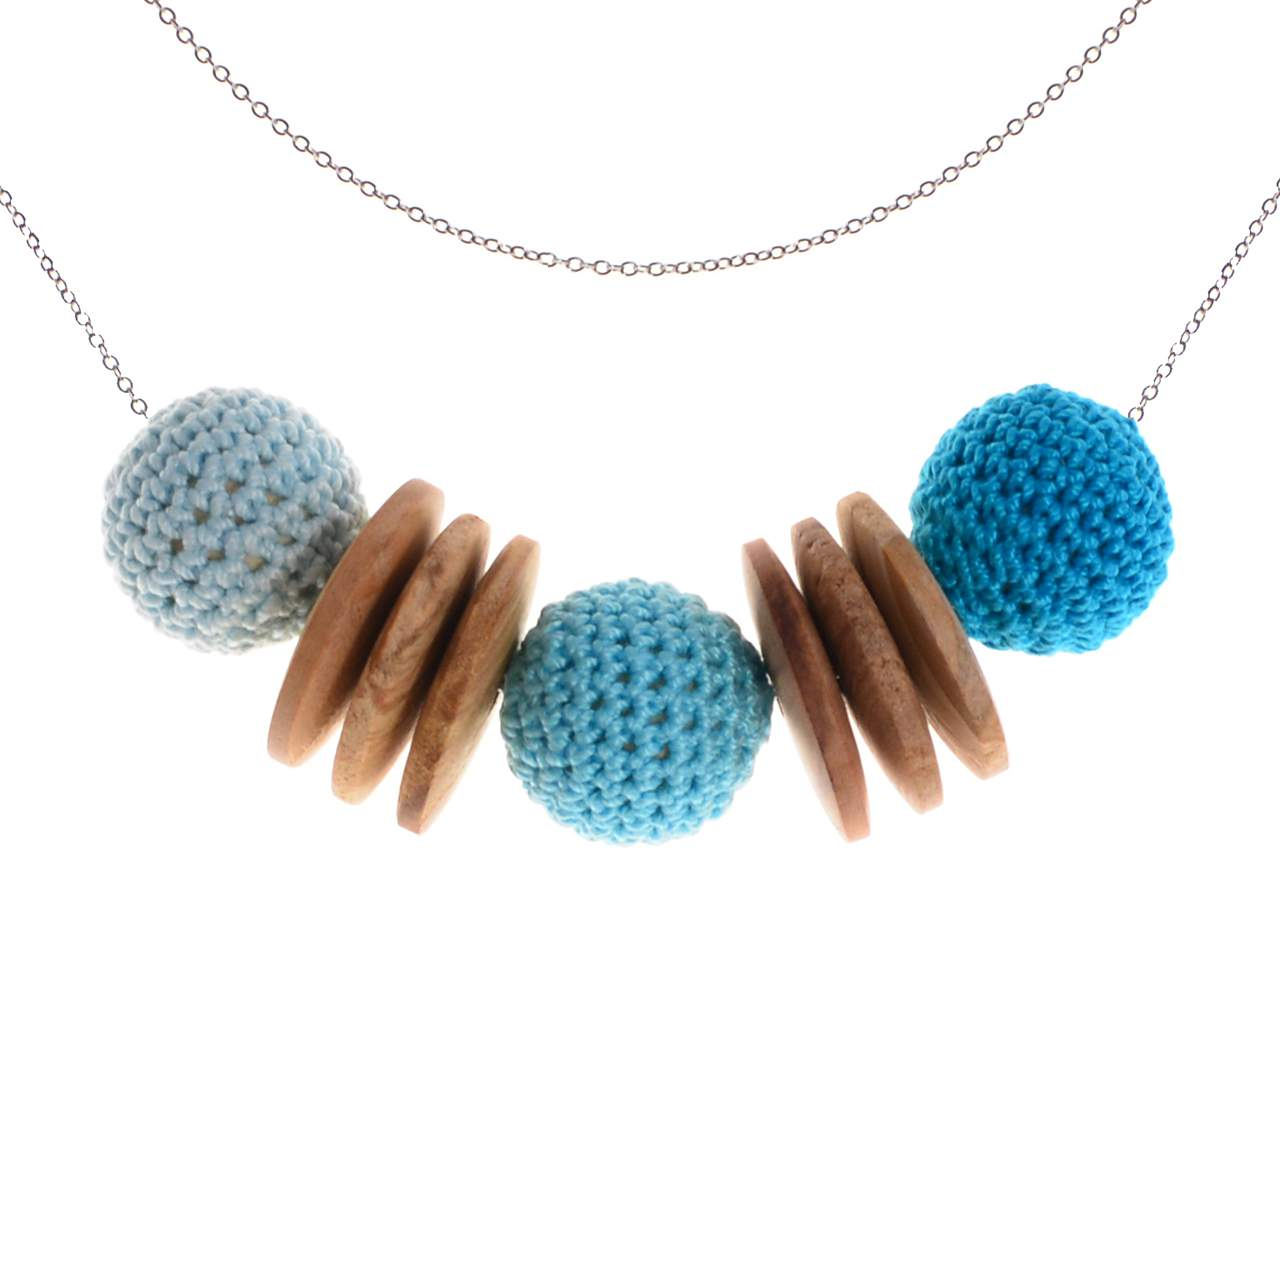 Mon Bijou - Necklace Elegance Nature - Blue Hues | The Design Gift Shop